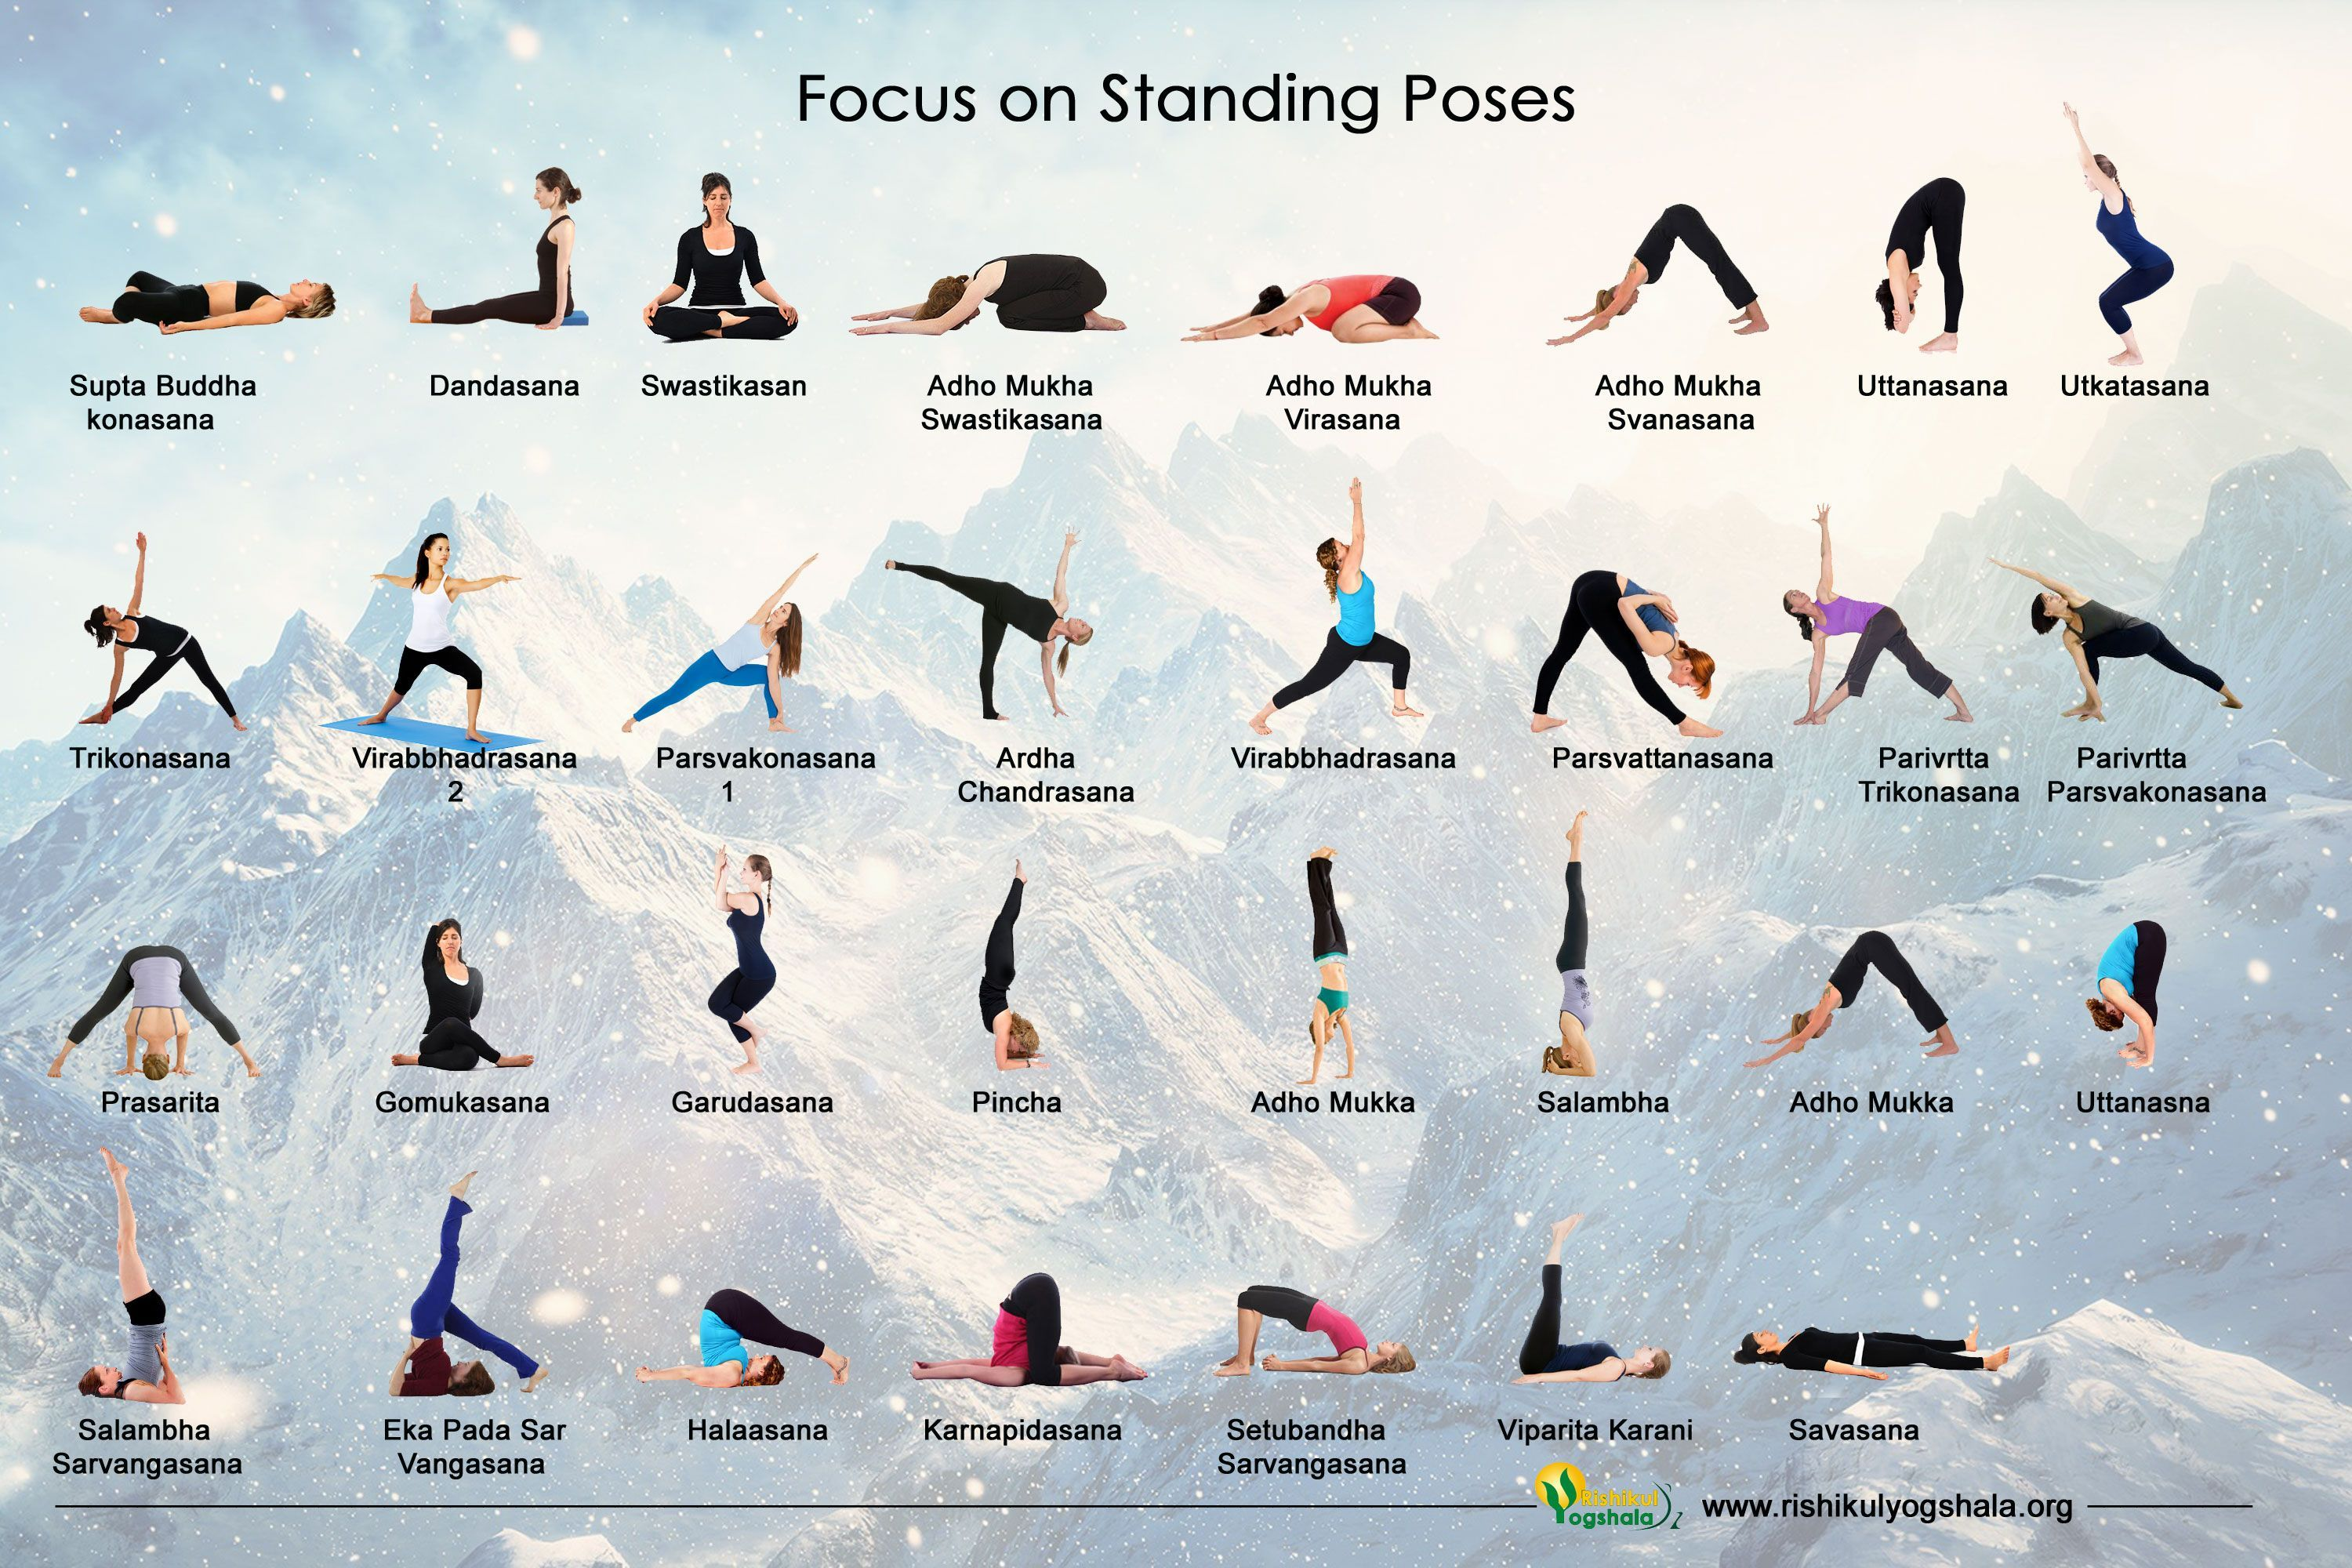 Standing yoga postures require both strength and flexibility, and